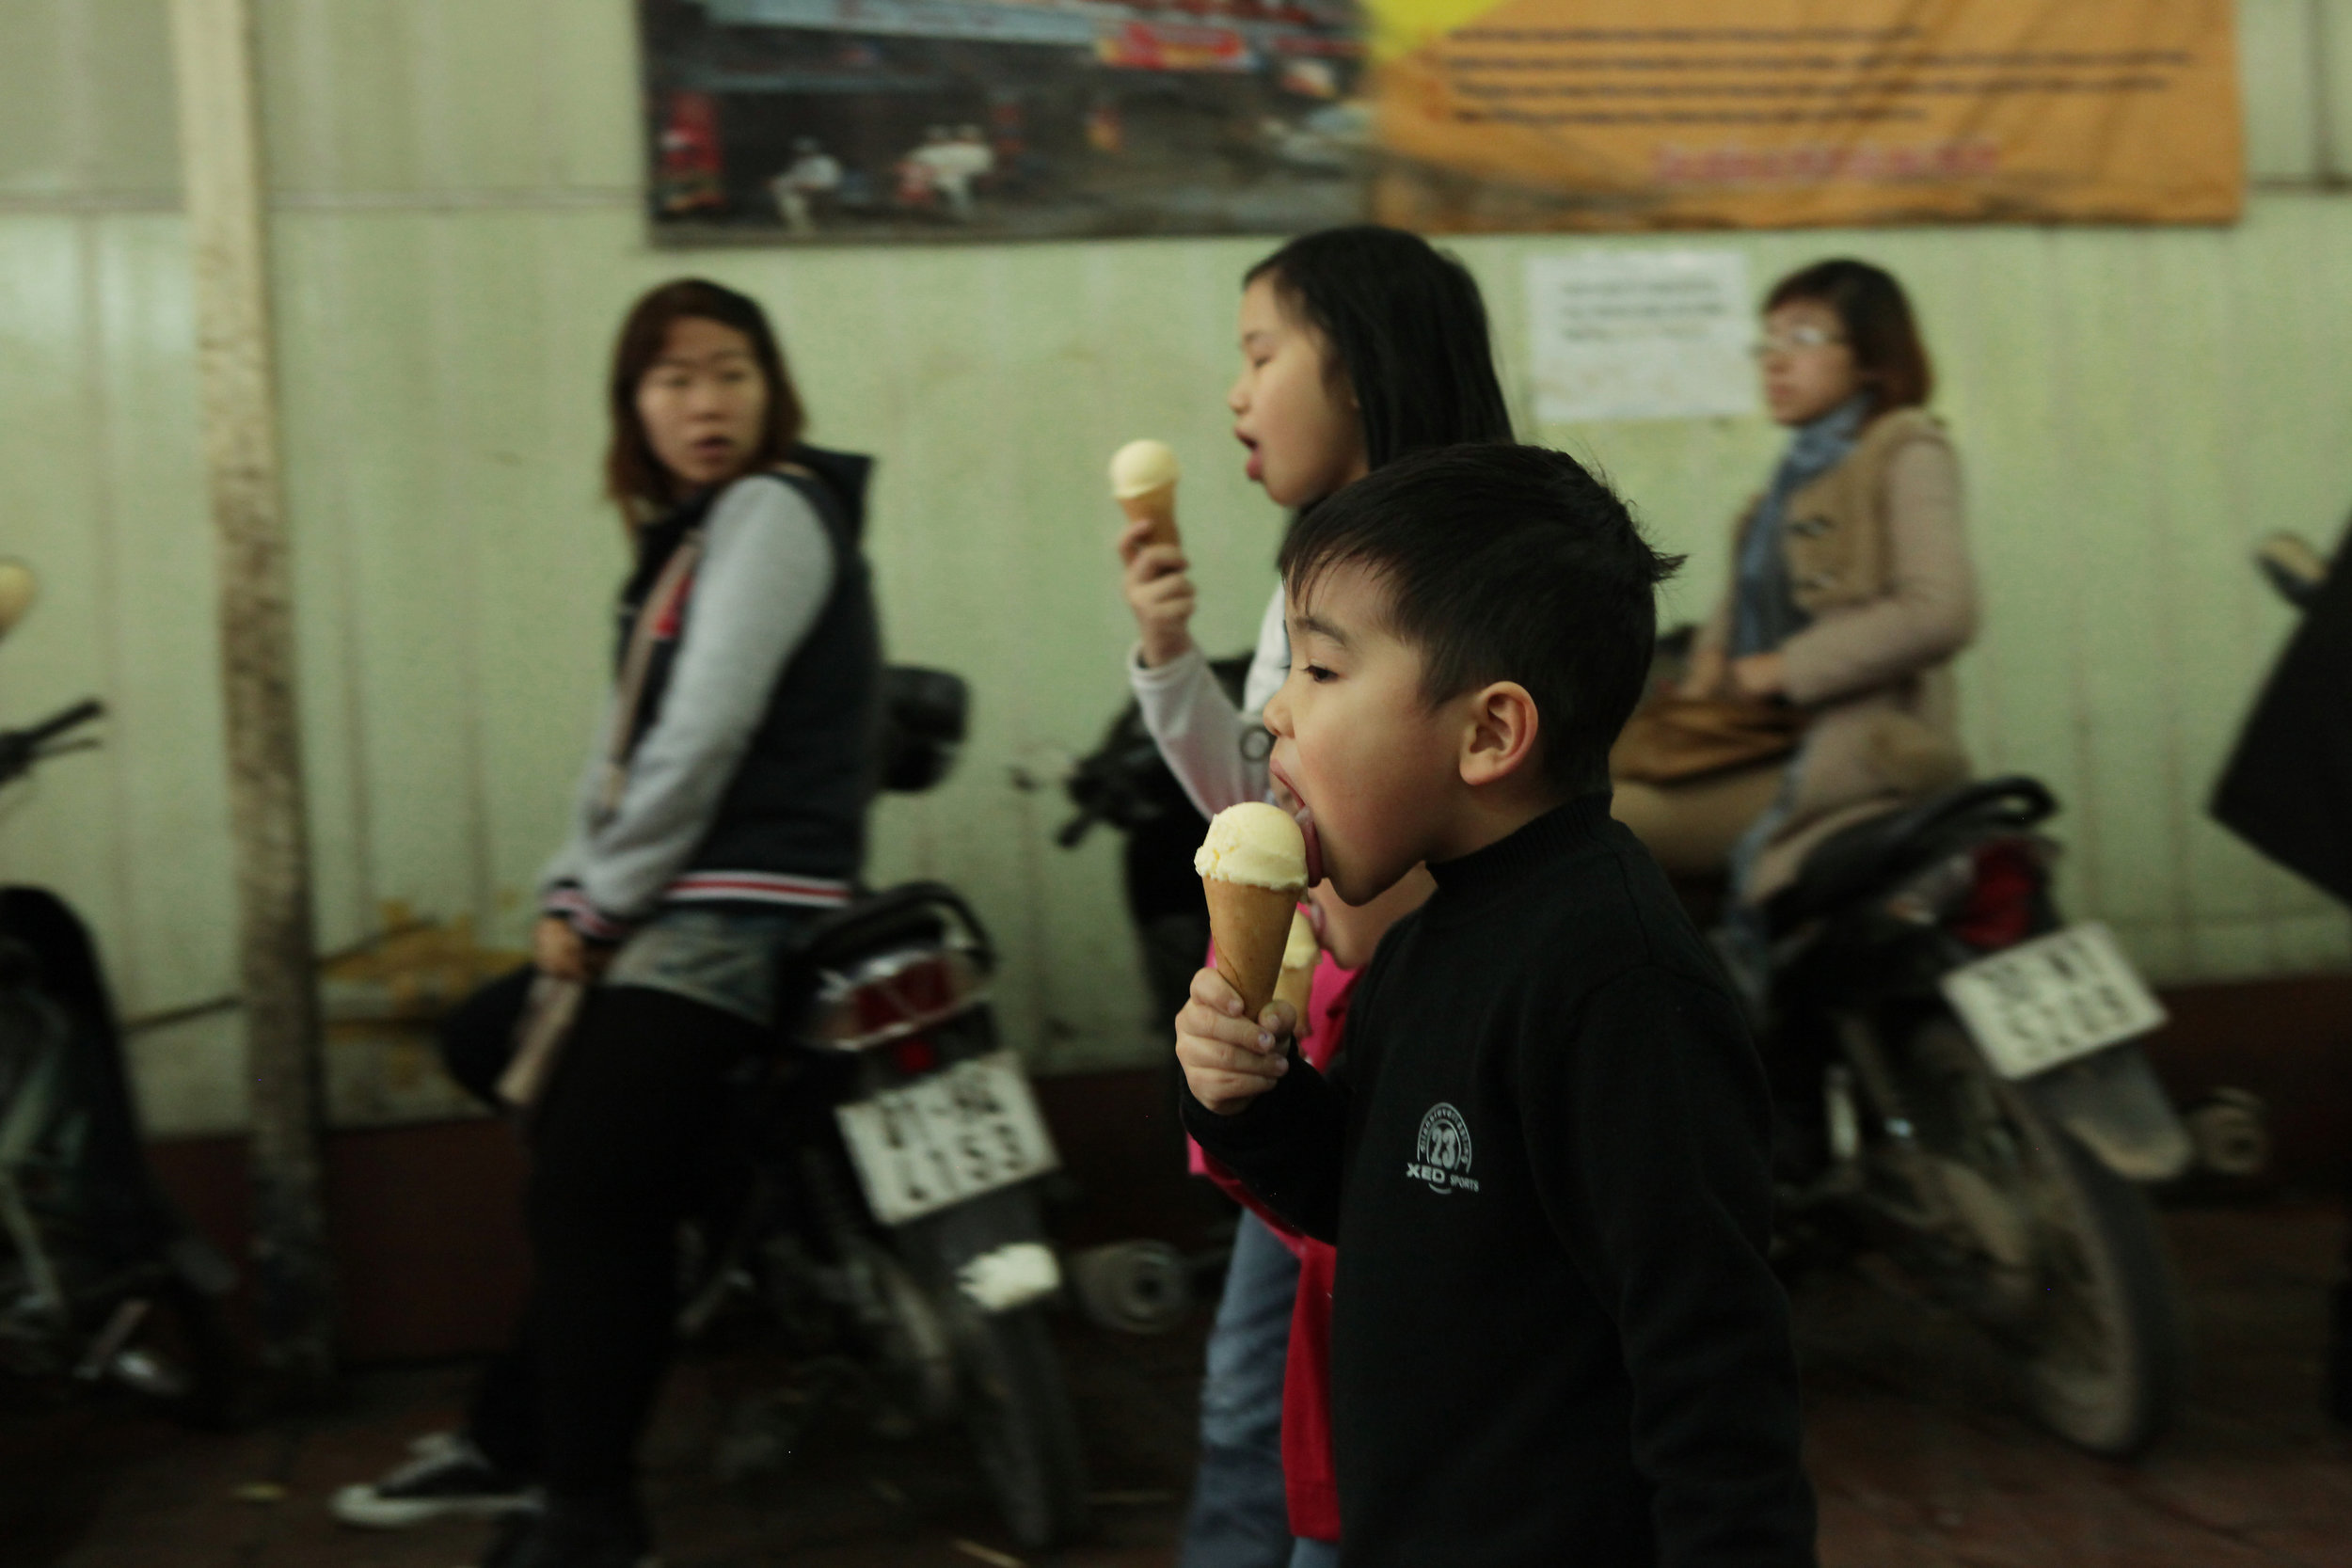 ice cream hanoi 13 new.jpg